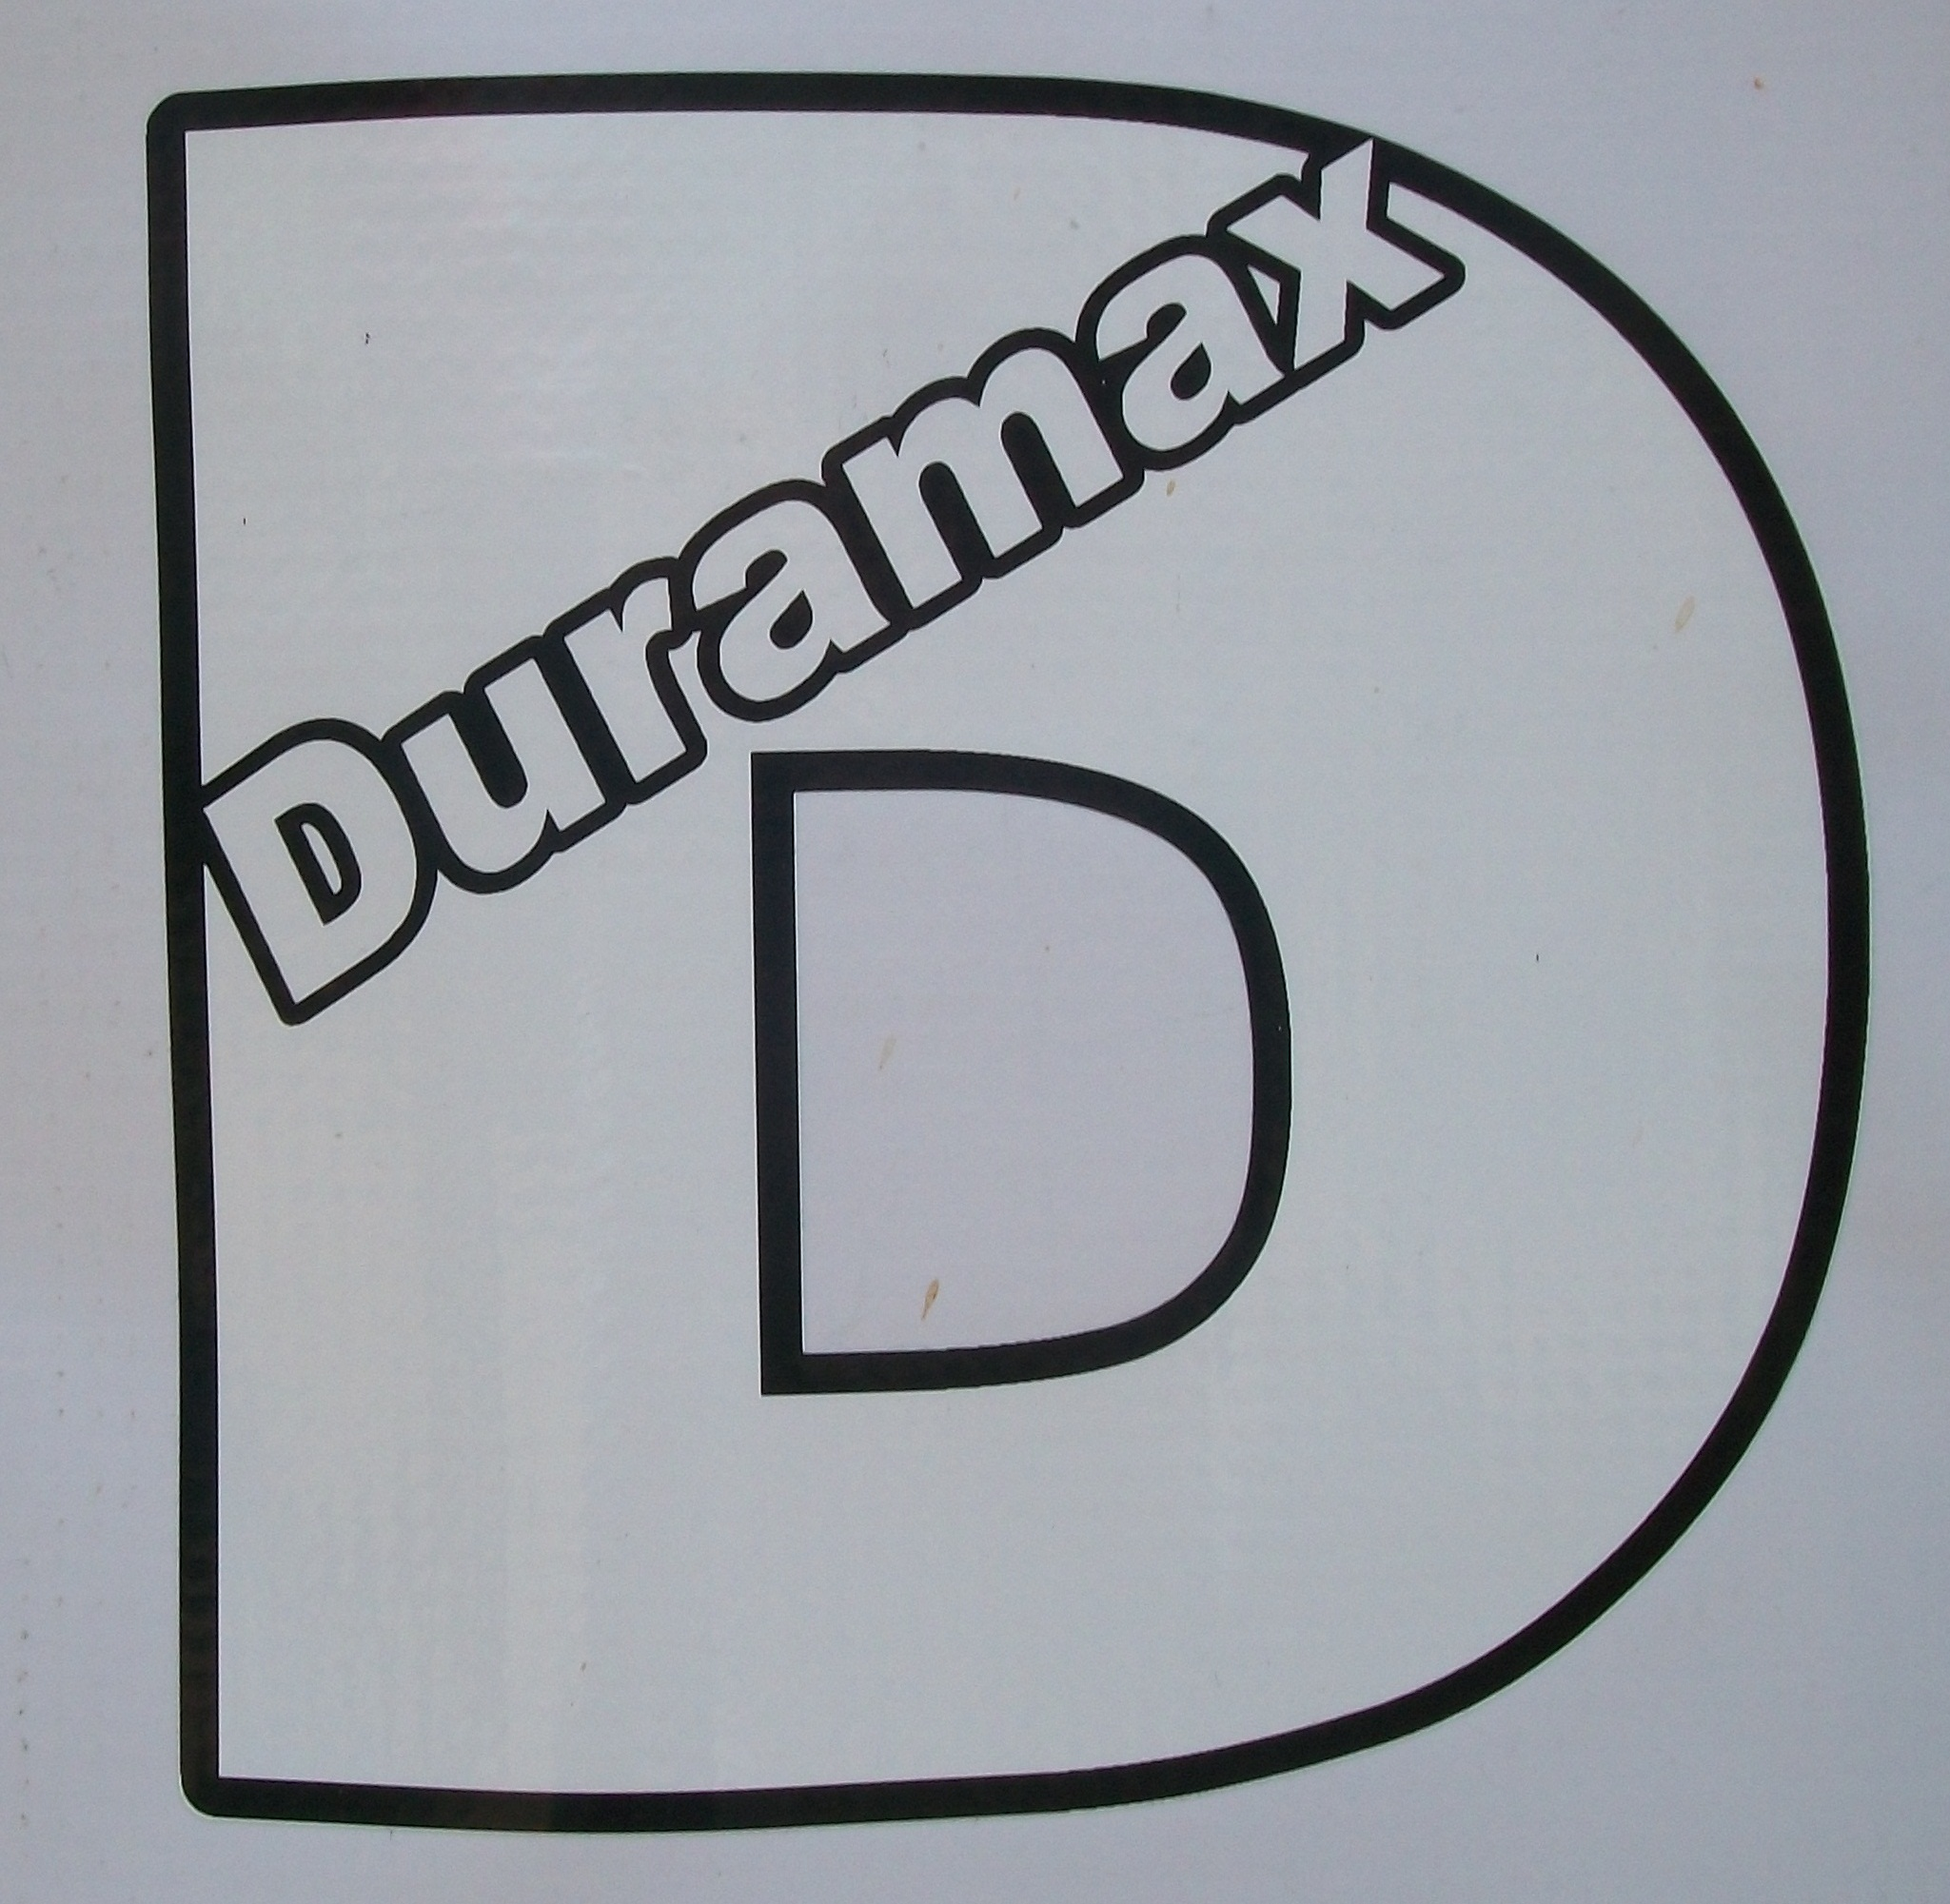 Duramax D Decal Accessories Scheid Diesel - Chevy duramax diesel decals